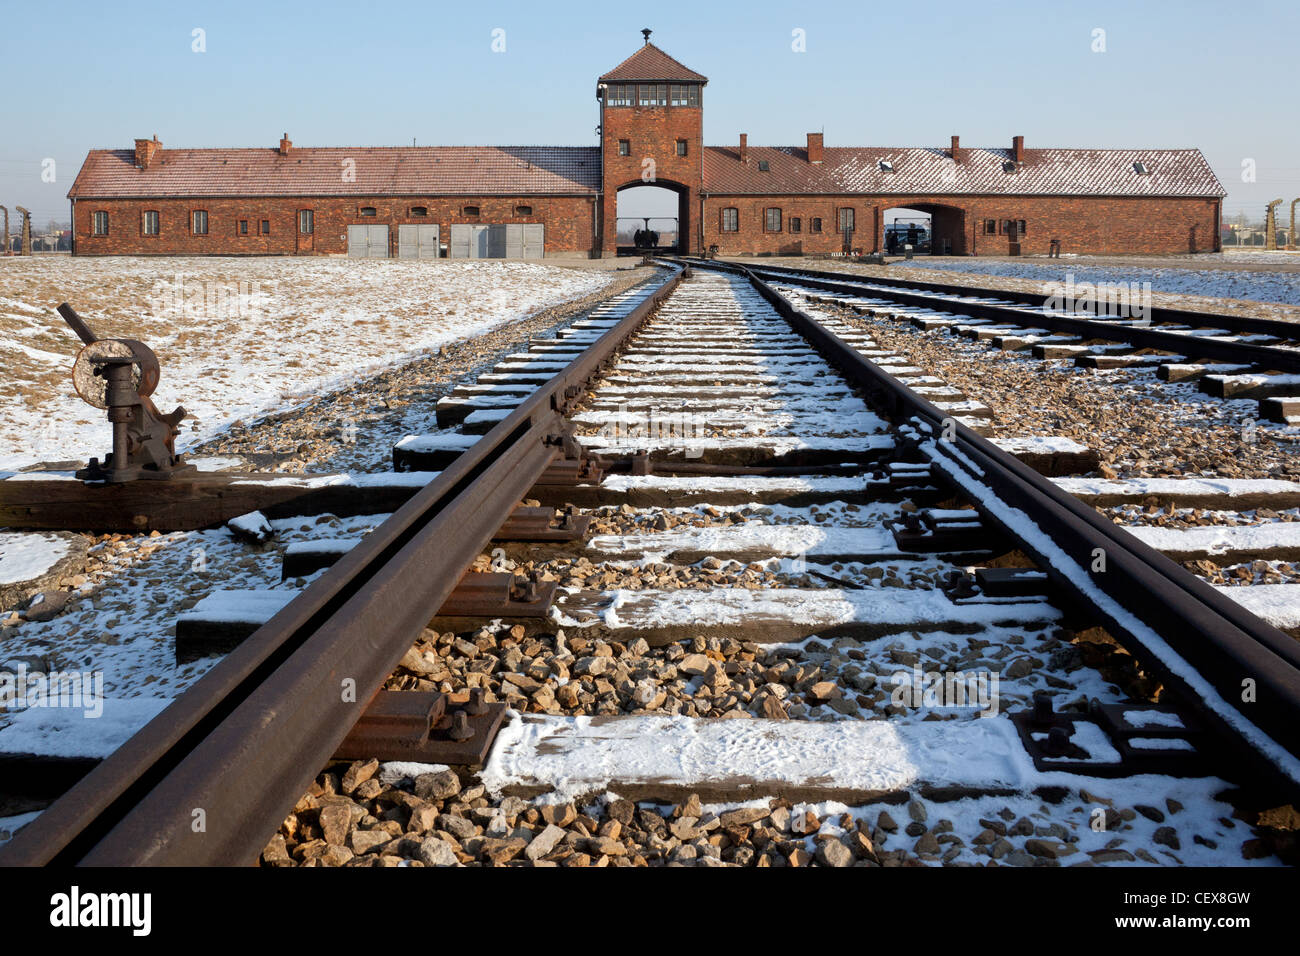 Birkenau Auschwitz concentration camp in Poland - Stock Image